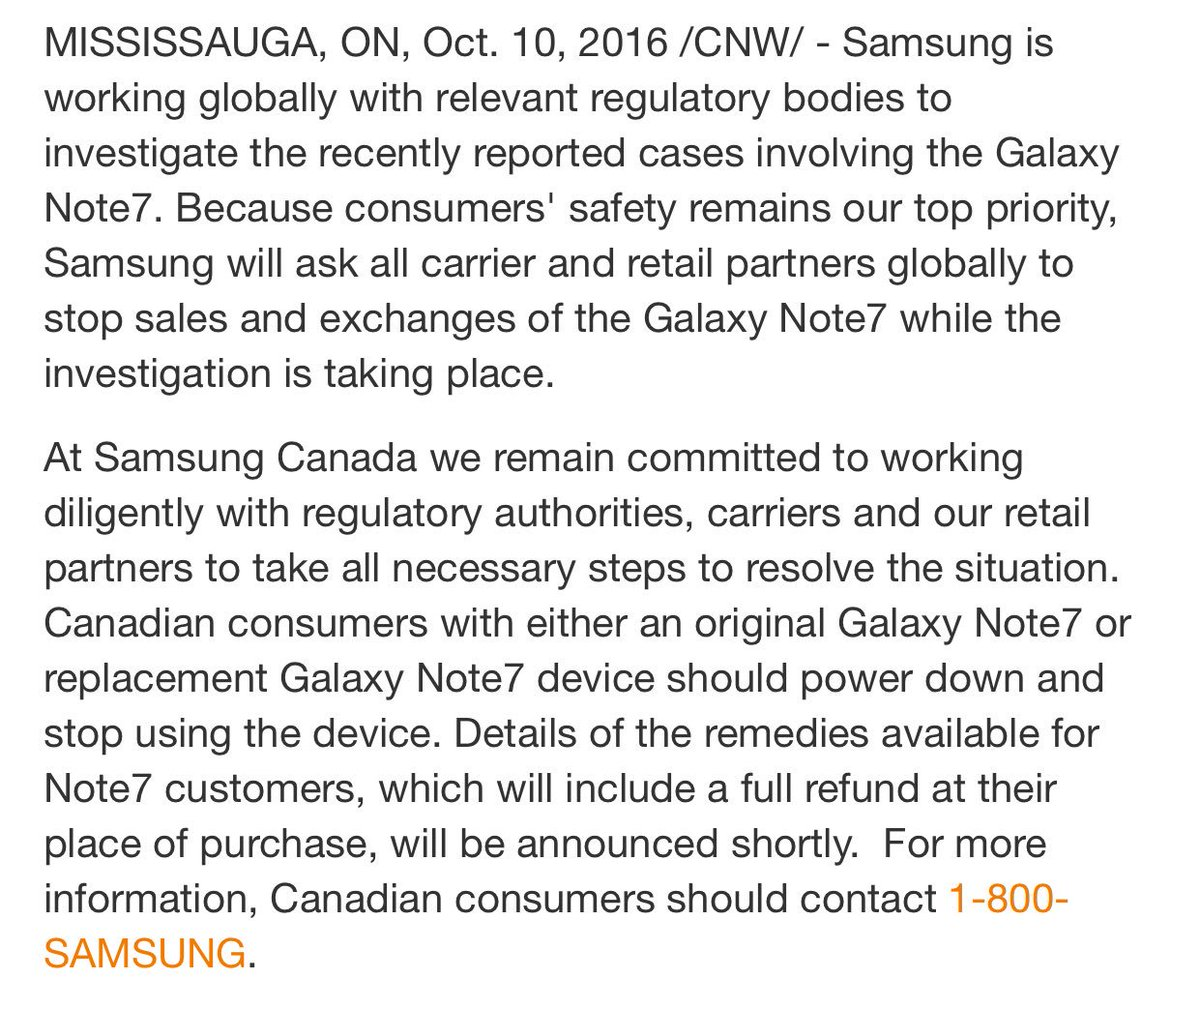 Samsung Canada has issued a statement about the Galaxy Note 7. Same as other markets: Power down and return it. https://t.co/cdfyiTSwQB